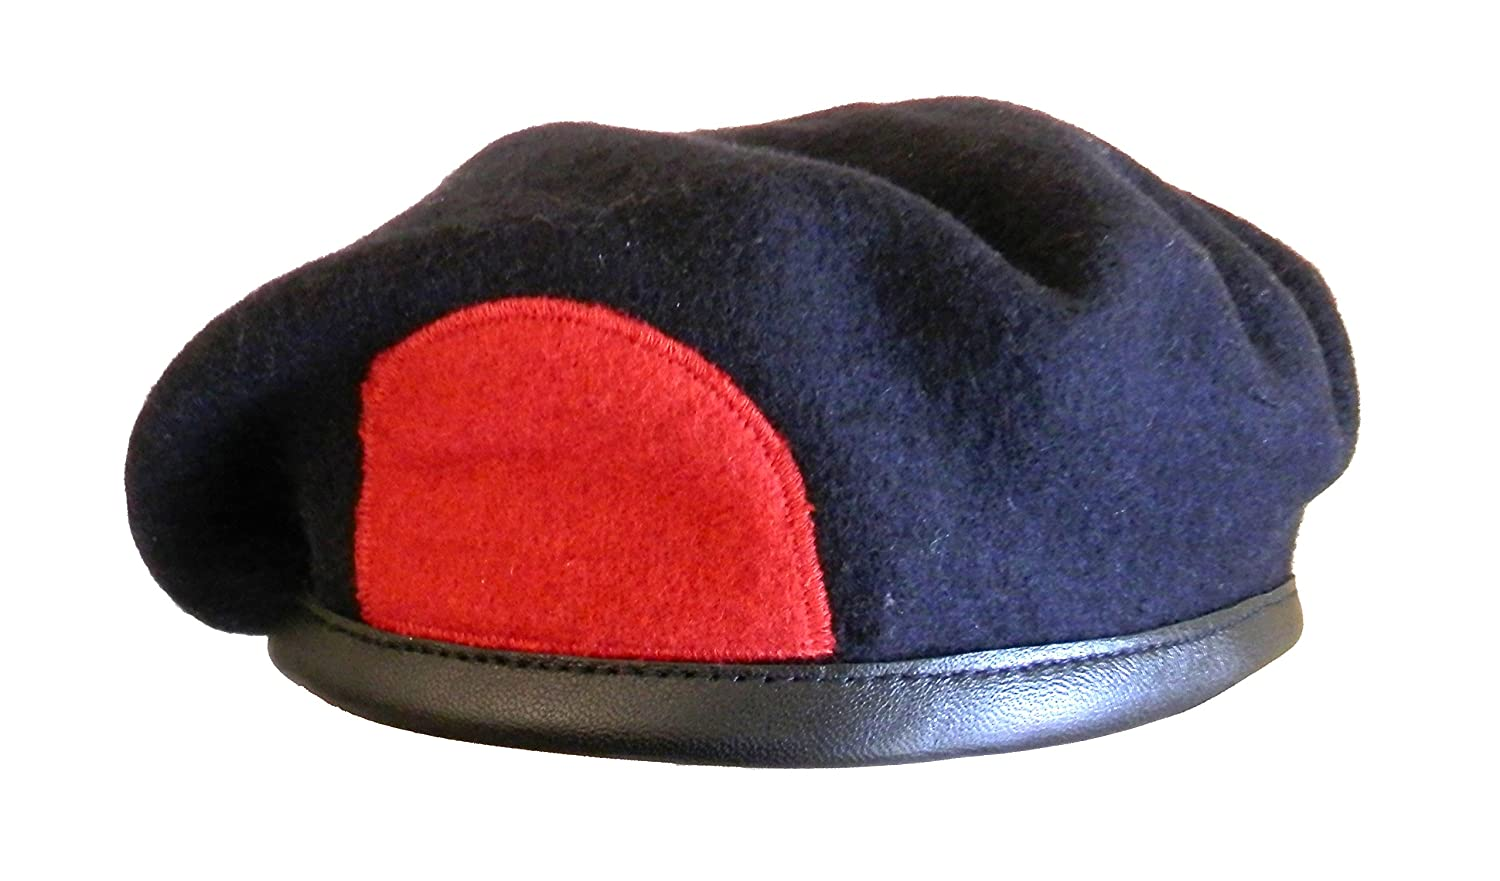 Royal Marine Navy Blue Beret with Patch